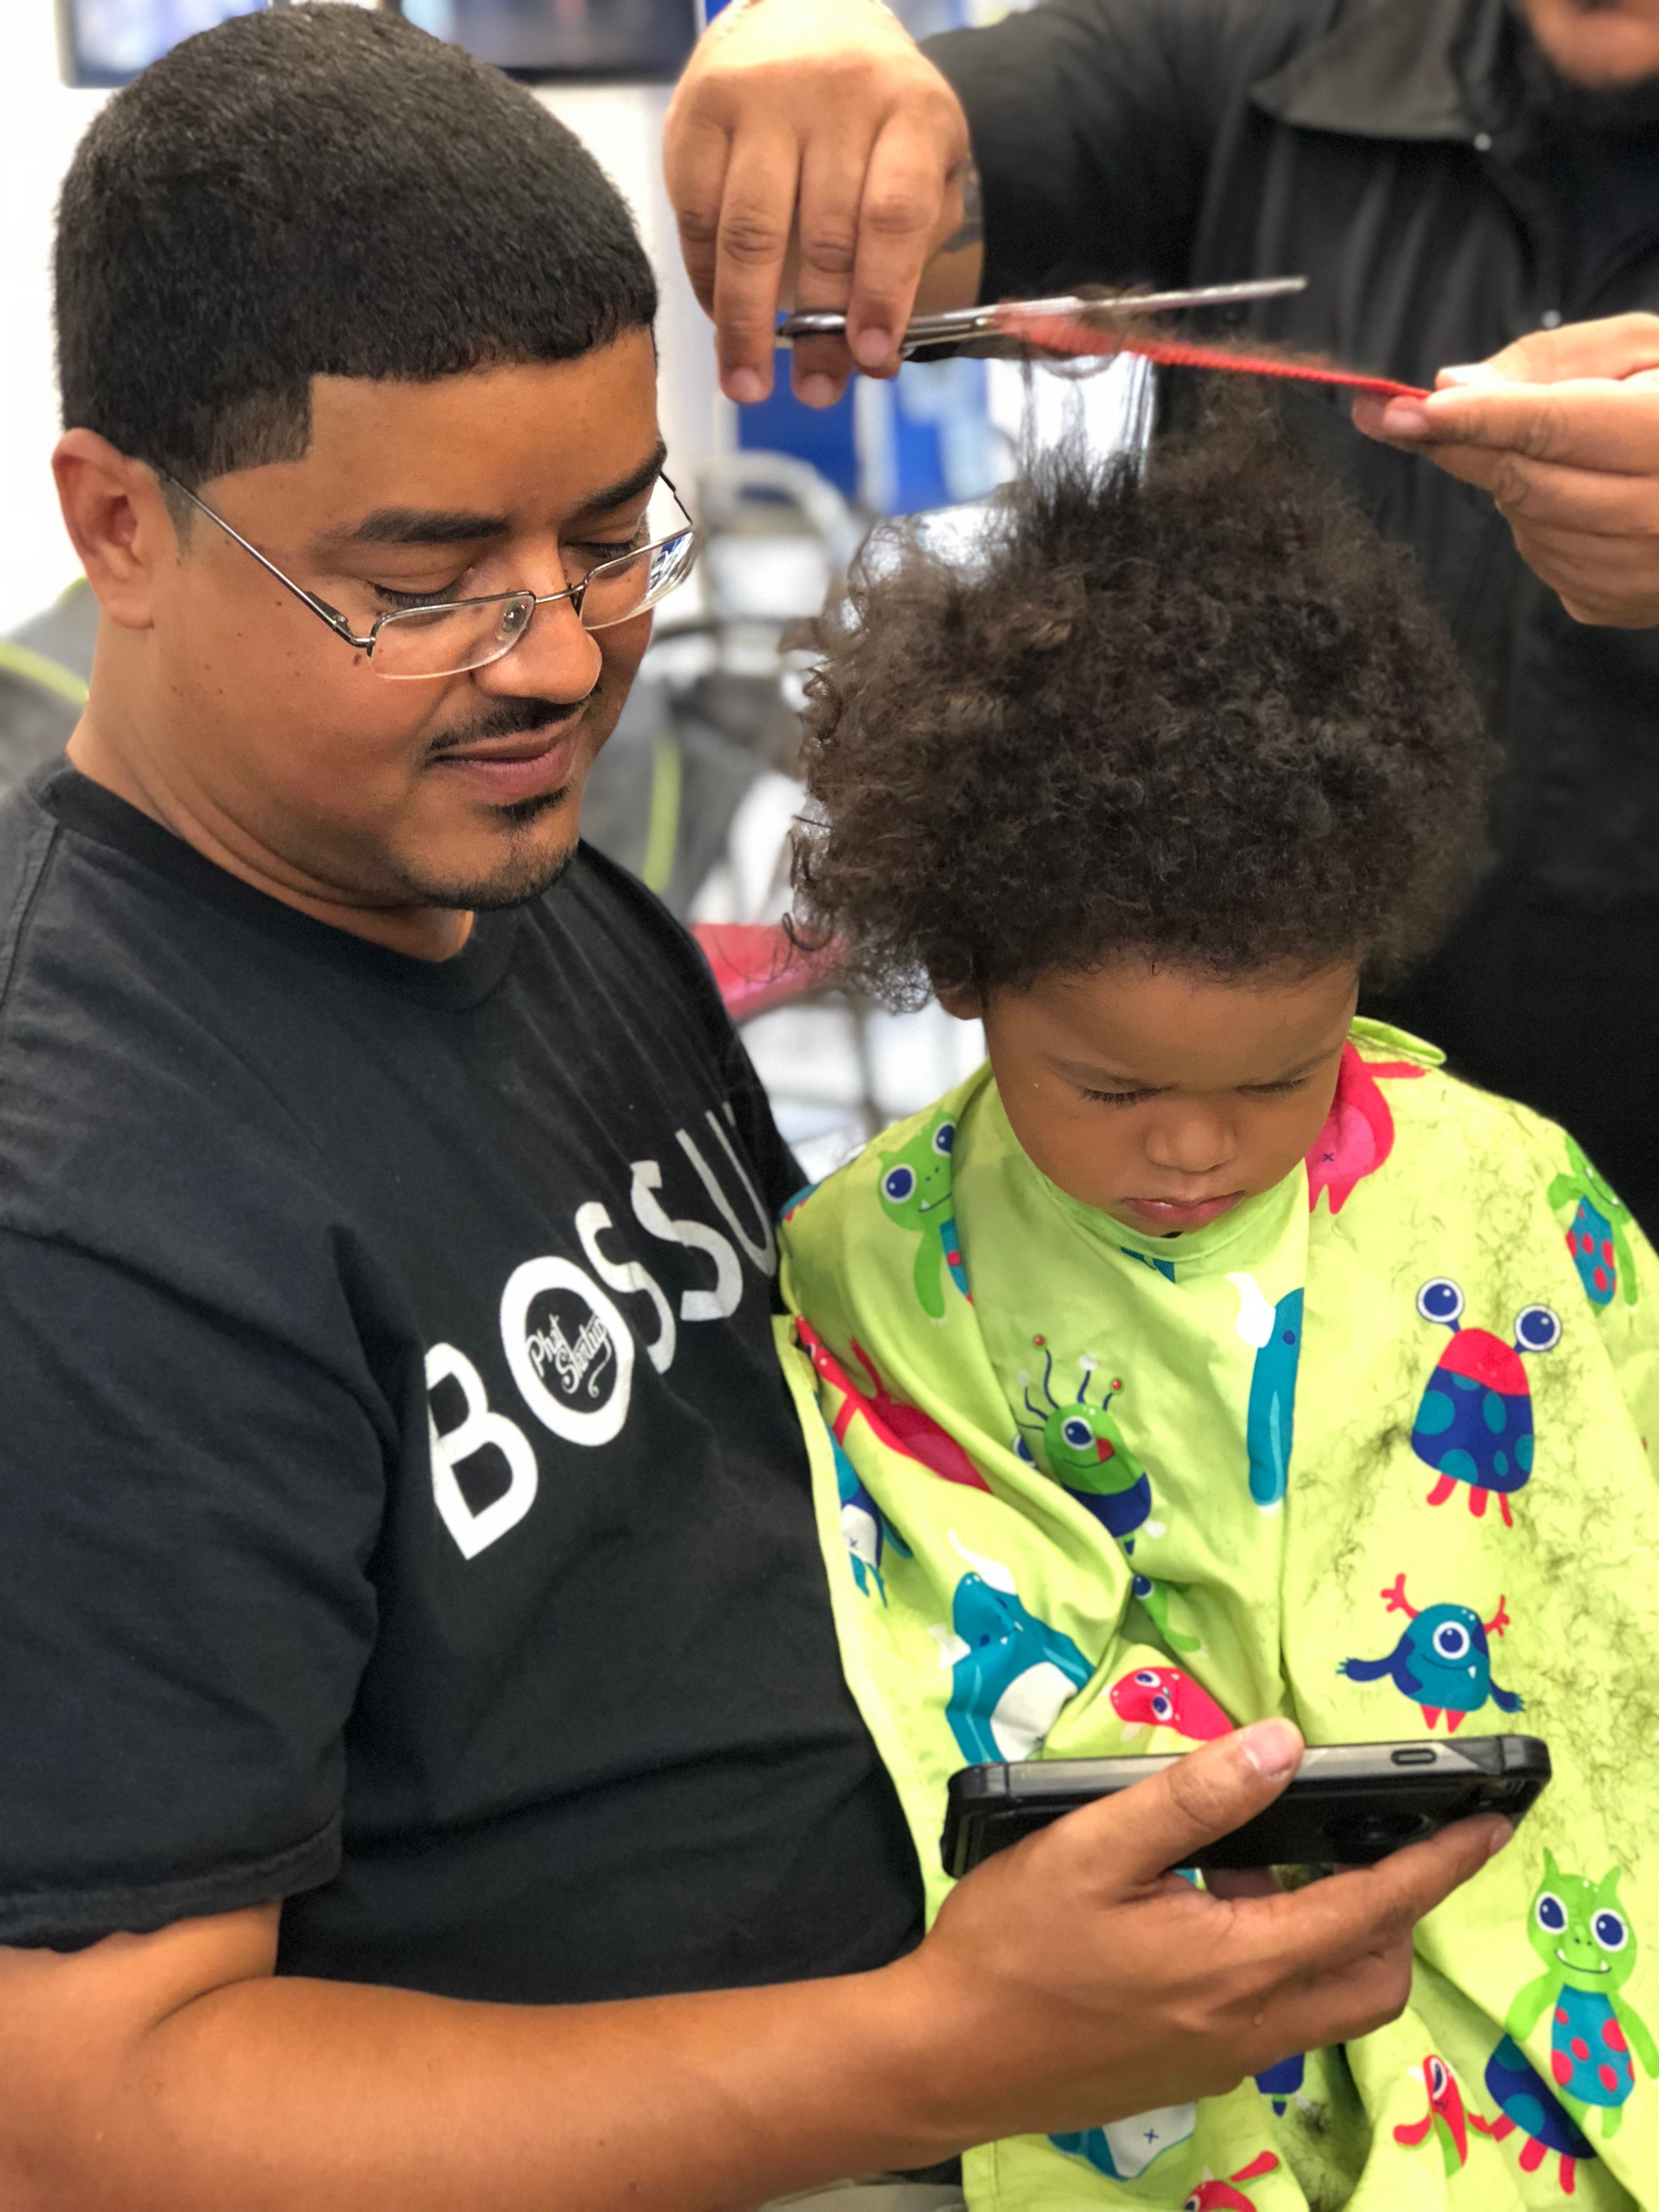 #FatherhoodIsLit 1st Haircut